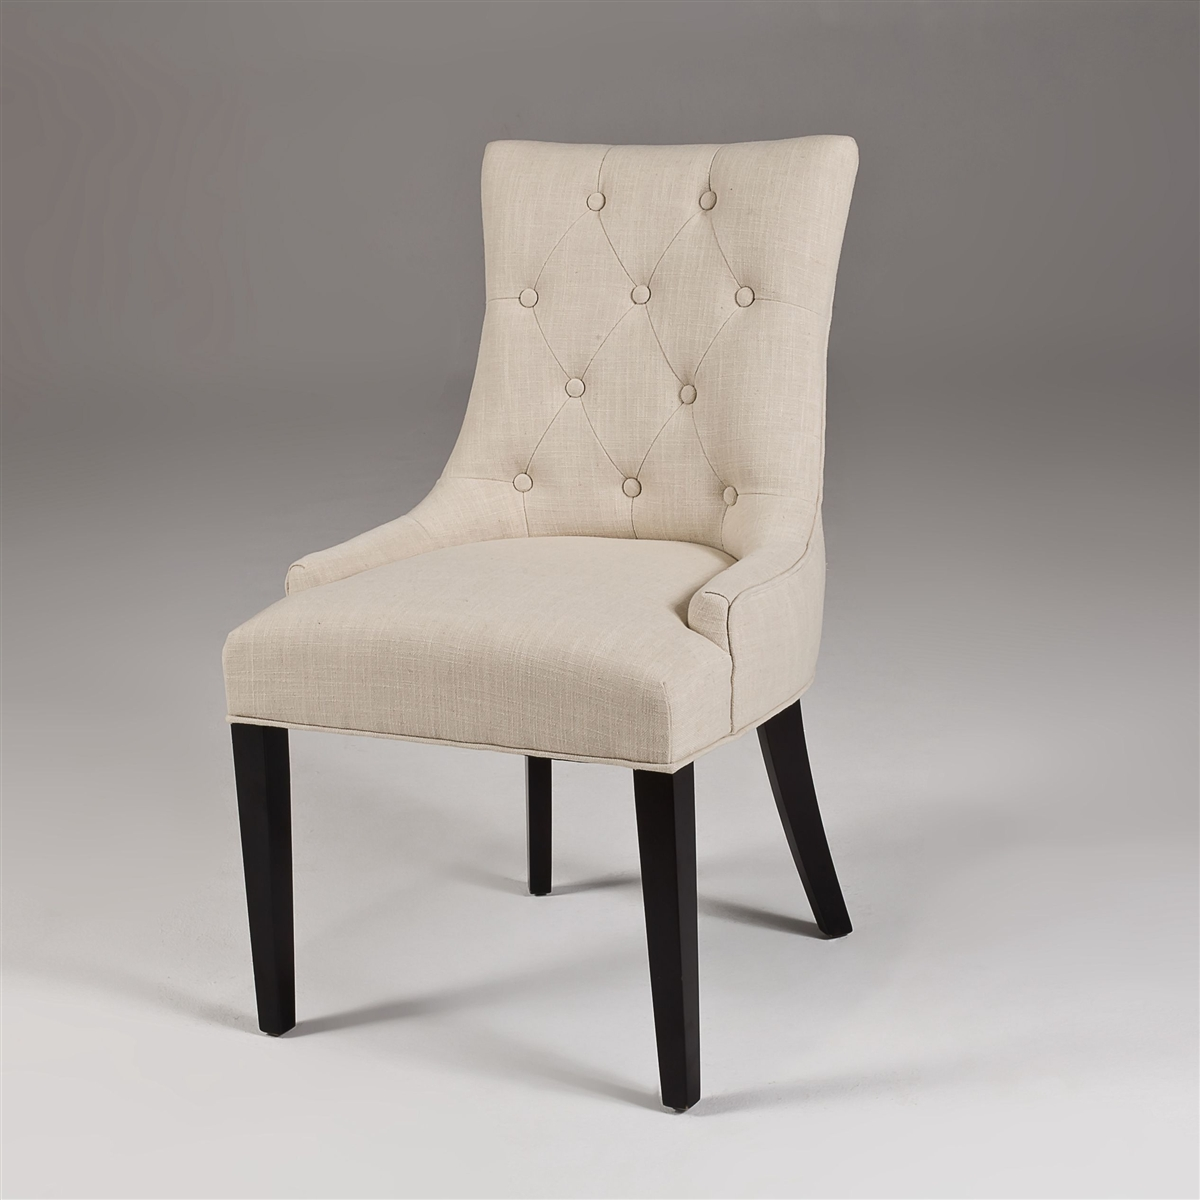 Modern Dining Chairs Beige Linen Tufted